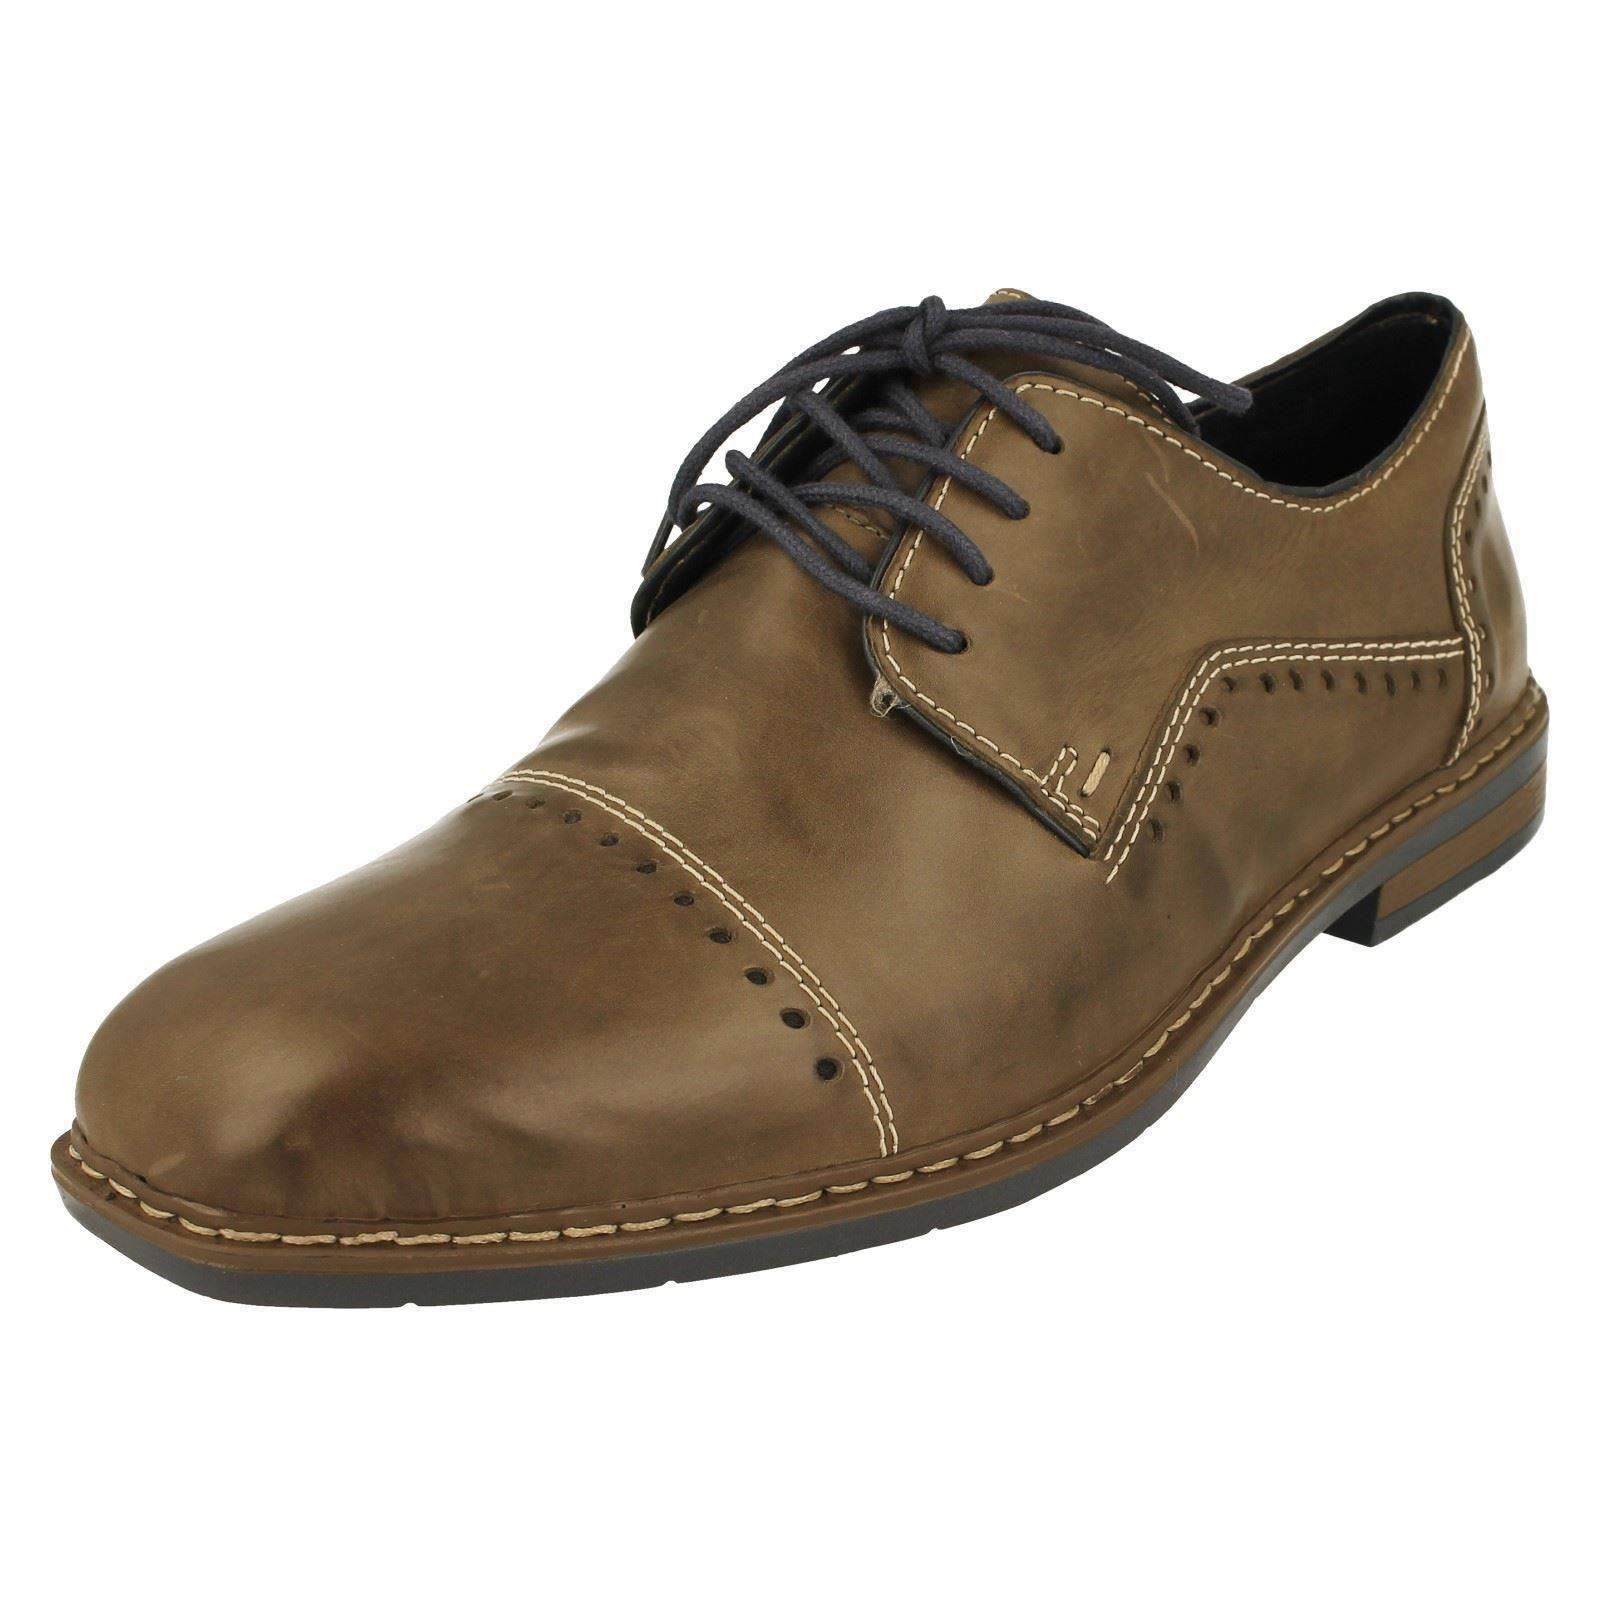 Mens Rieker Shoes the Style 10720-W